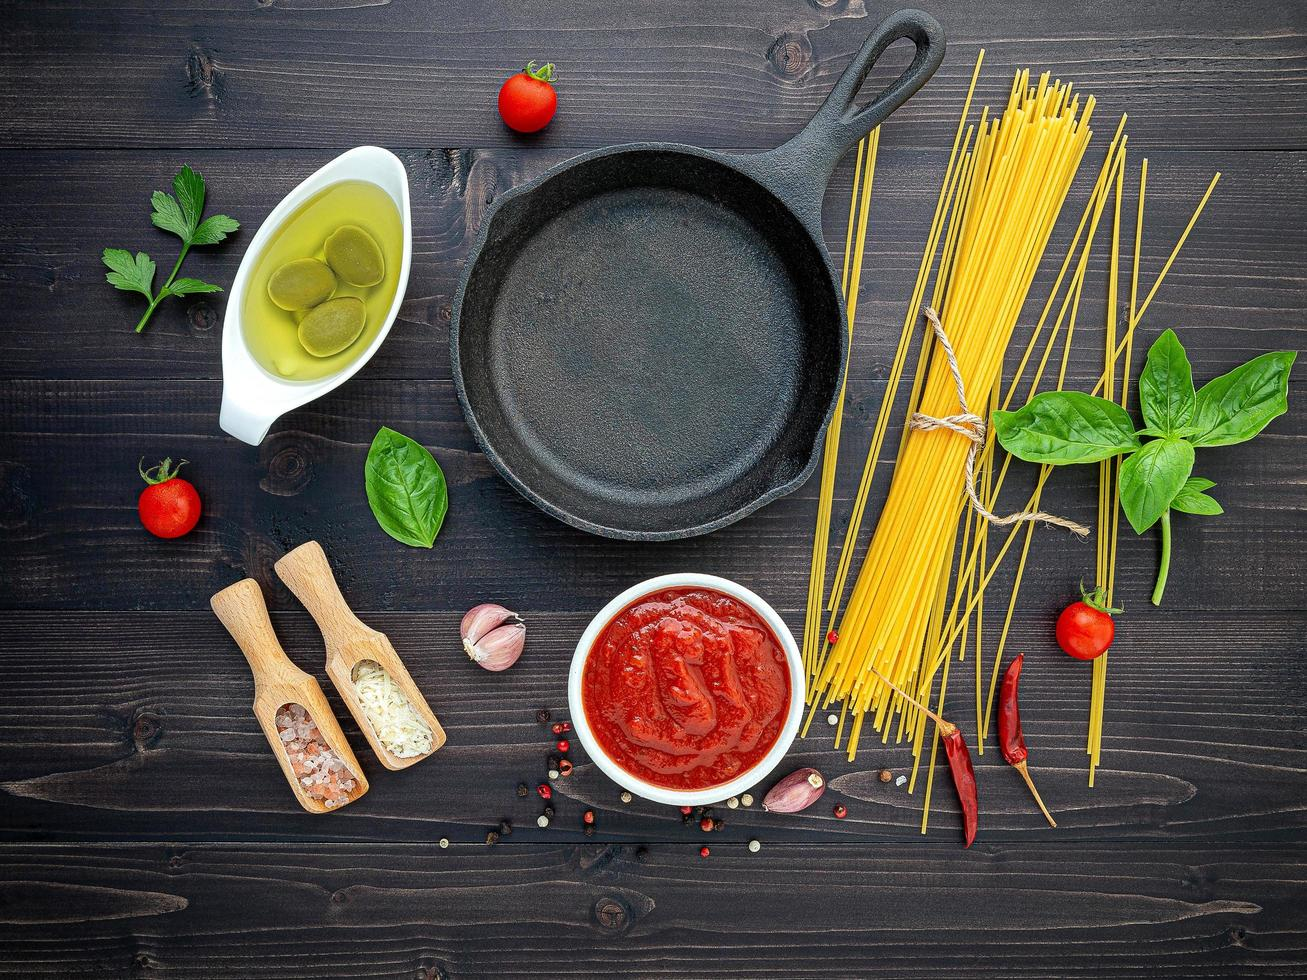 Spaghetti ingredients with a cast iron skillet photo